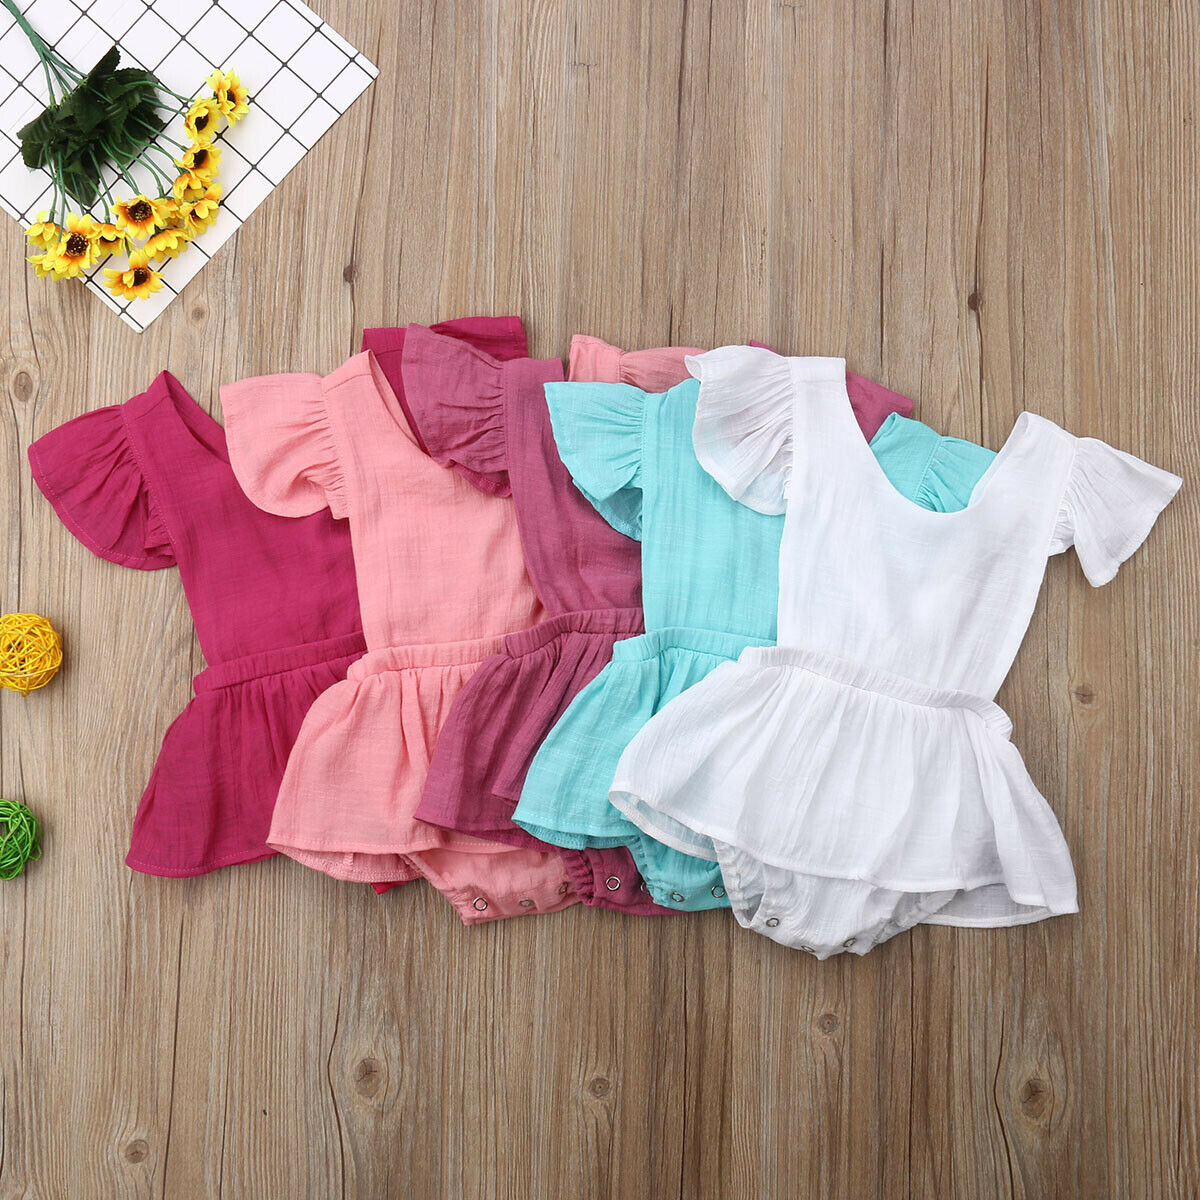 5 Color Solid Romper Cute Newborn Infant Baby Girl Ruffle Sleeveless Backless Romper Jumpsuit Sunsuit Clothes Outfits Cleaning The Oral Cavity. Bodysuits & One-pieces Mother & Kids